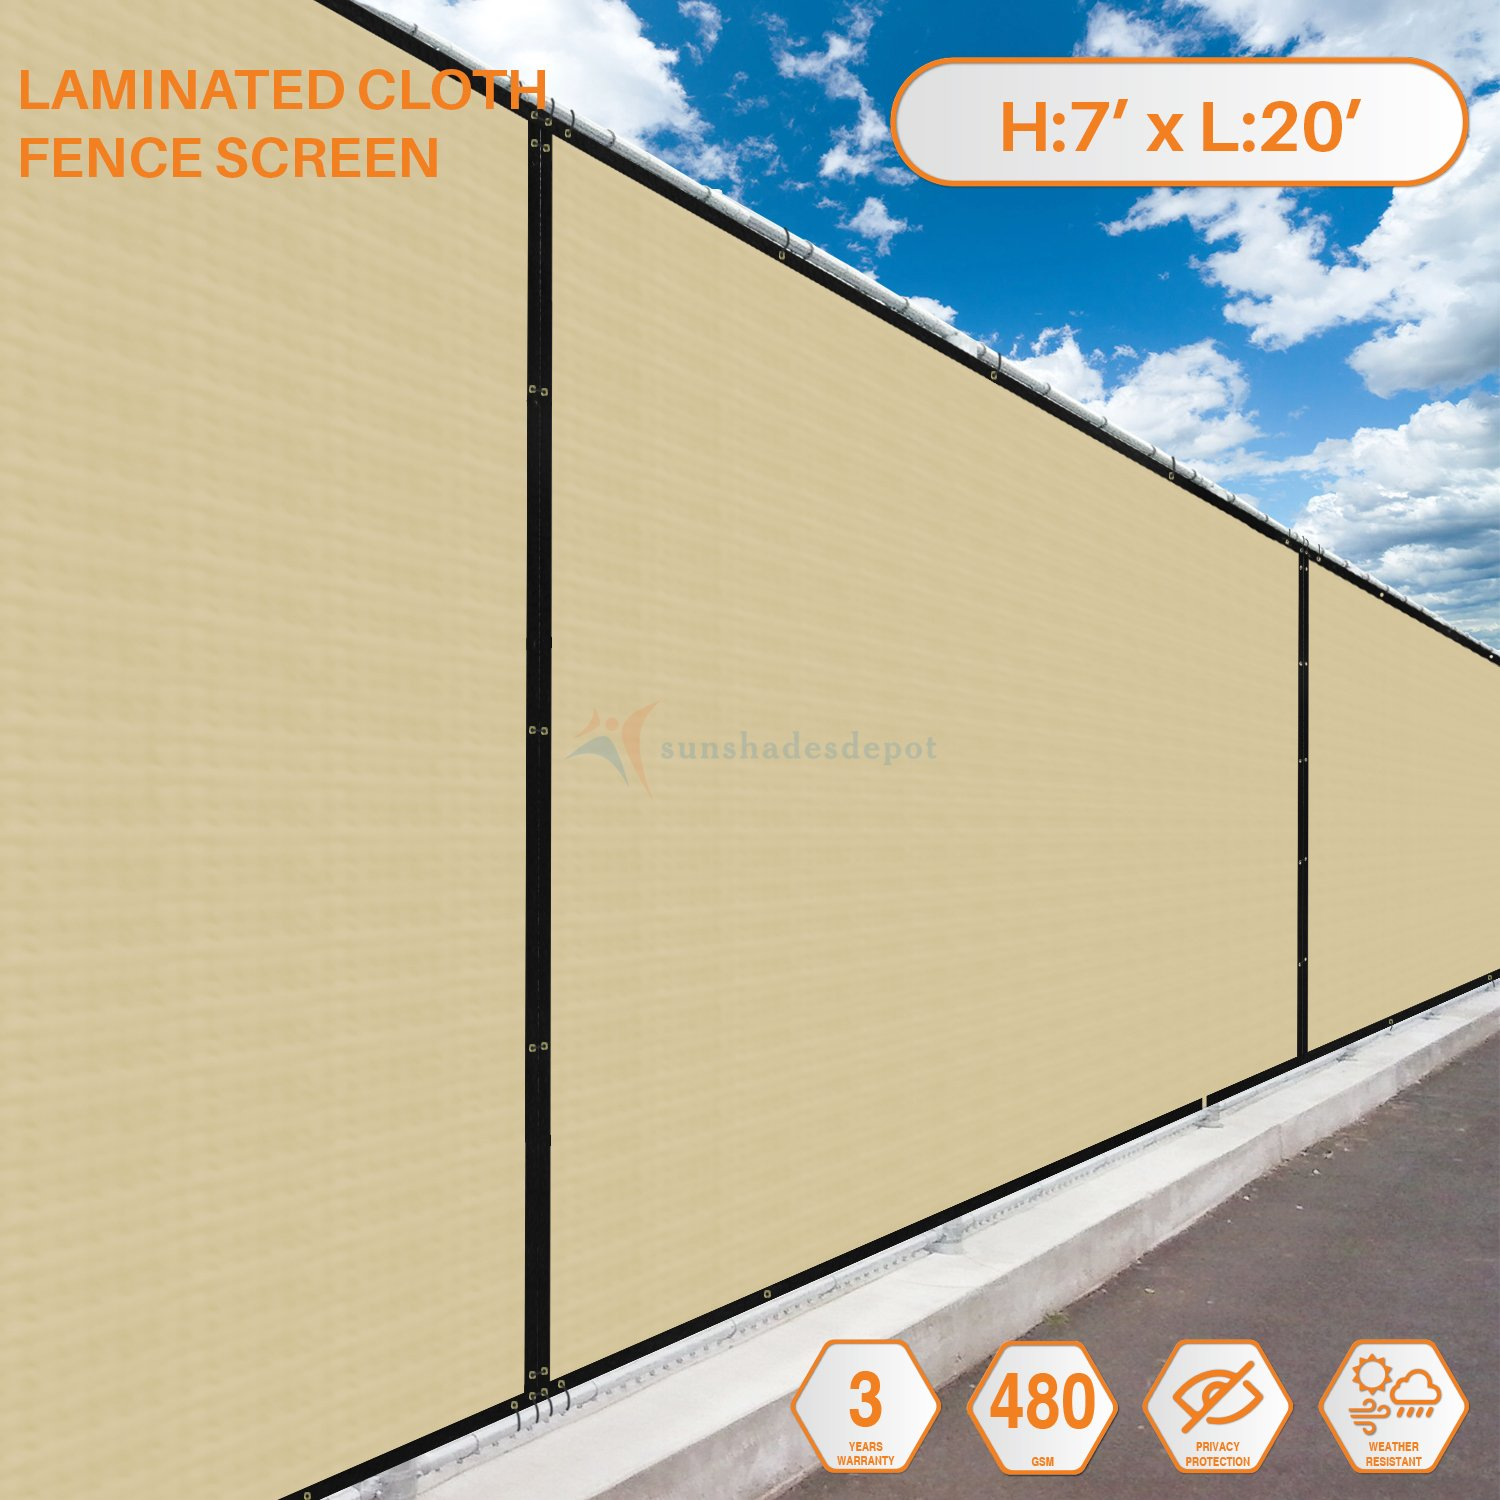 Sunshades Depot 7' FT x 20' FT Beige Tan Solid Vinyl Coated Polyester Mesh Fence Screen Residential Commercial Privacy Fence Screen Custom Available 3 Years Warranty 480 GSM 100% Blockage